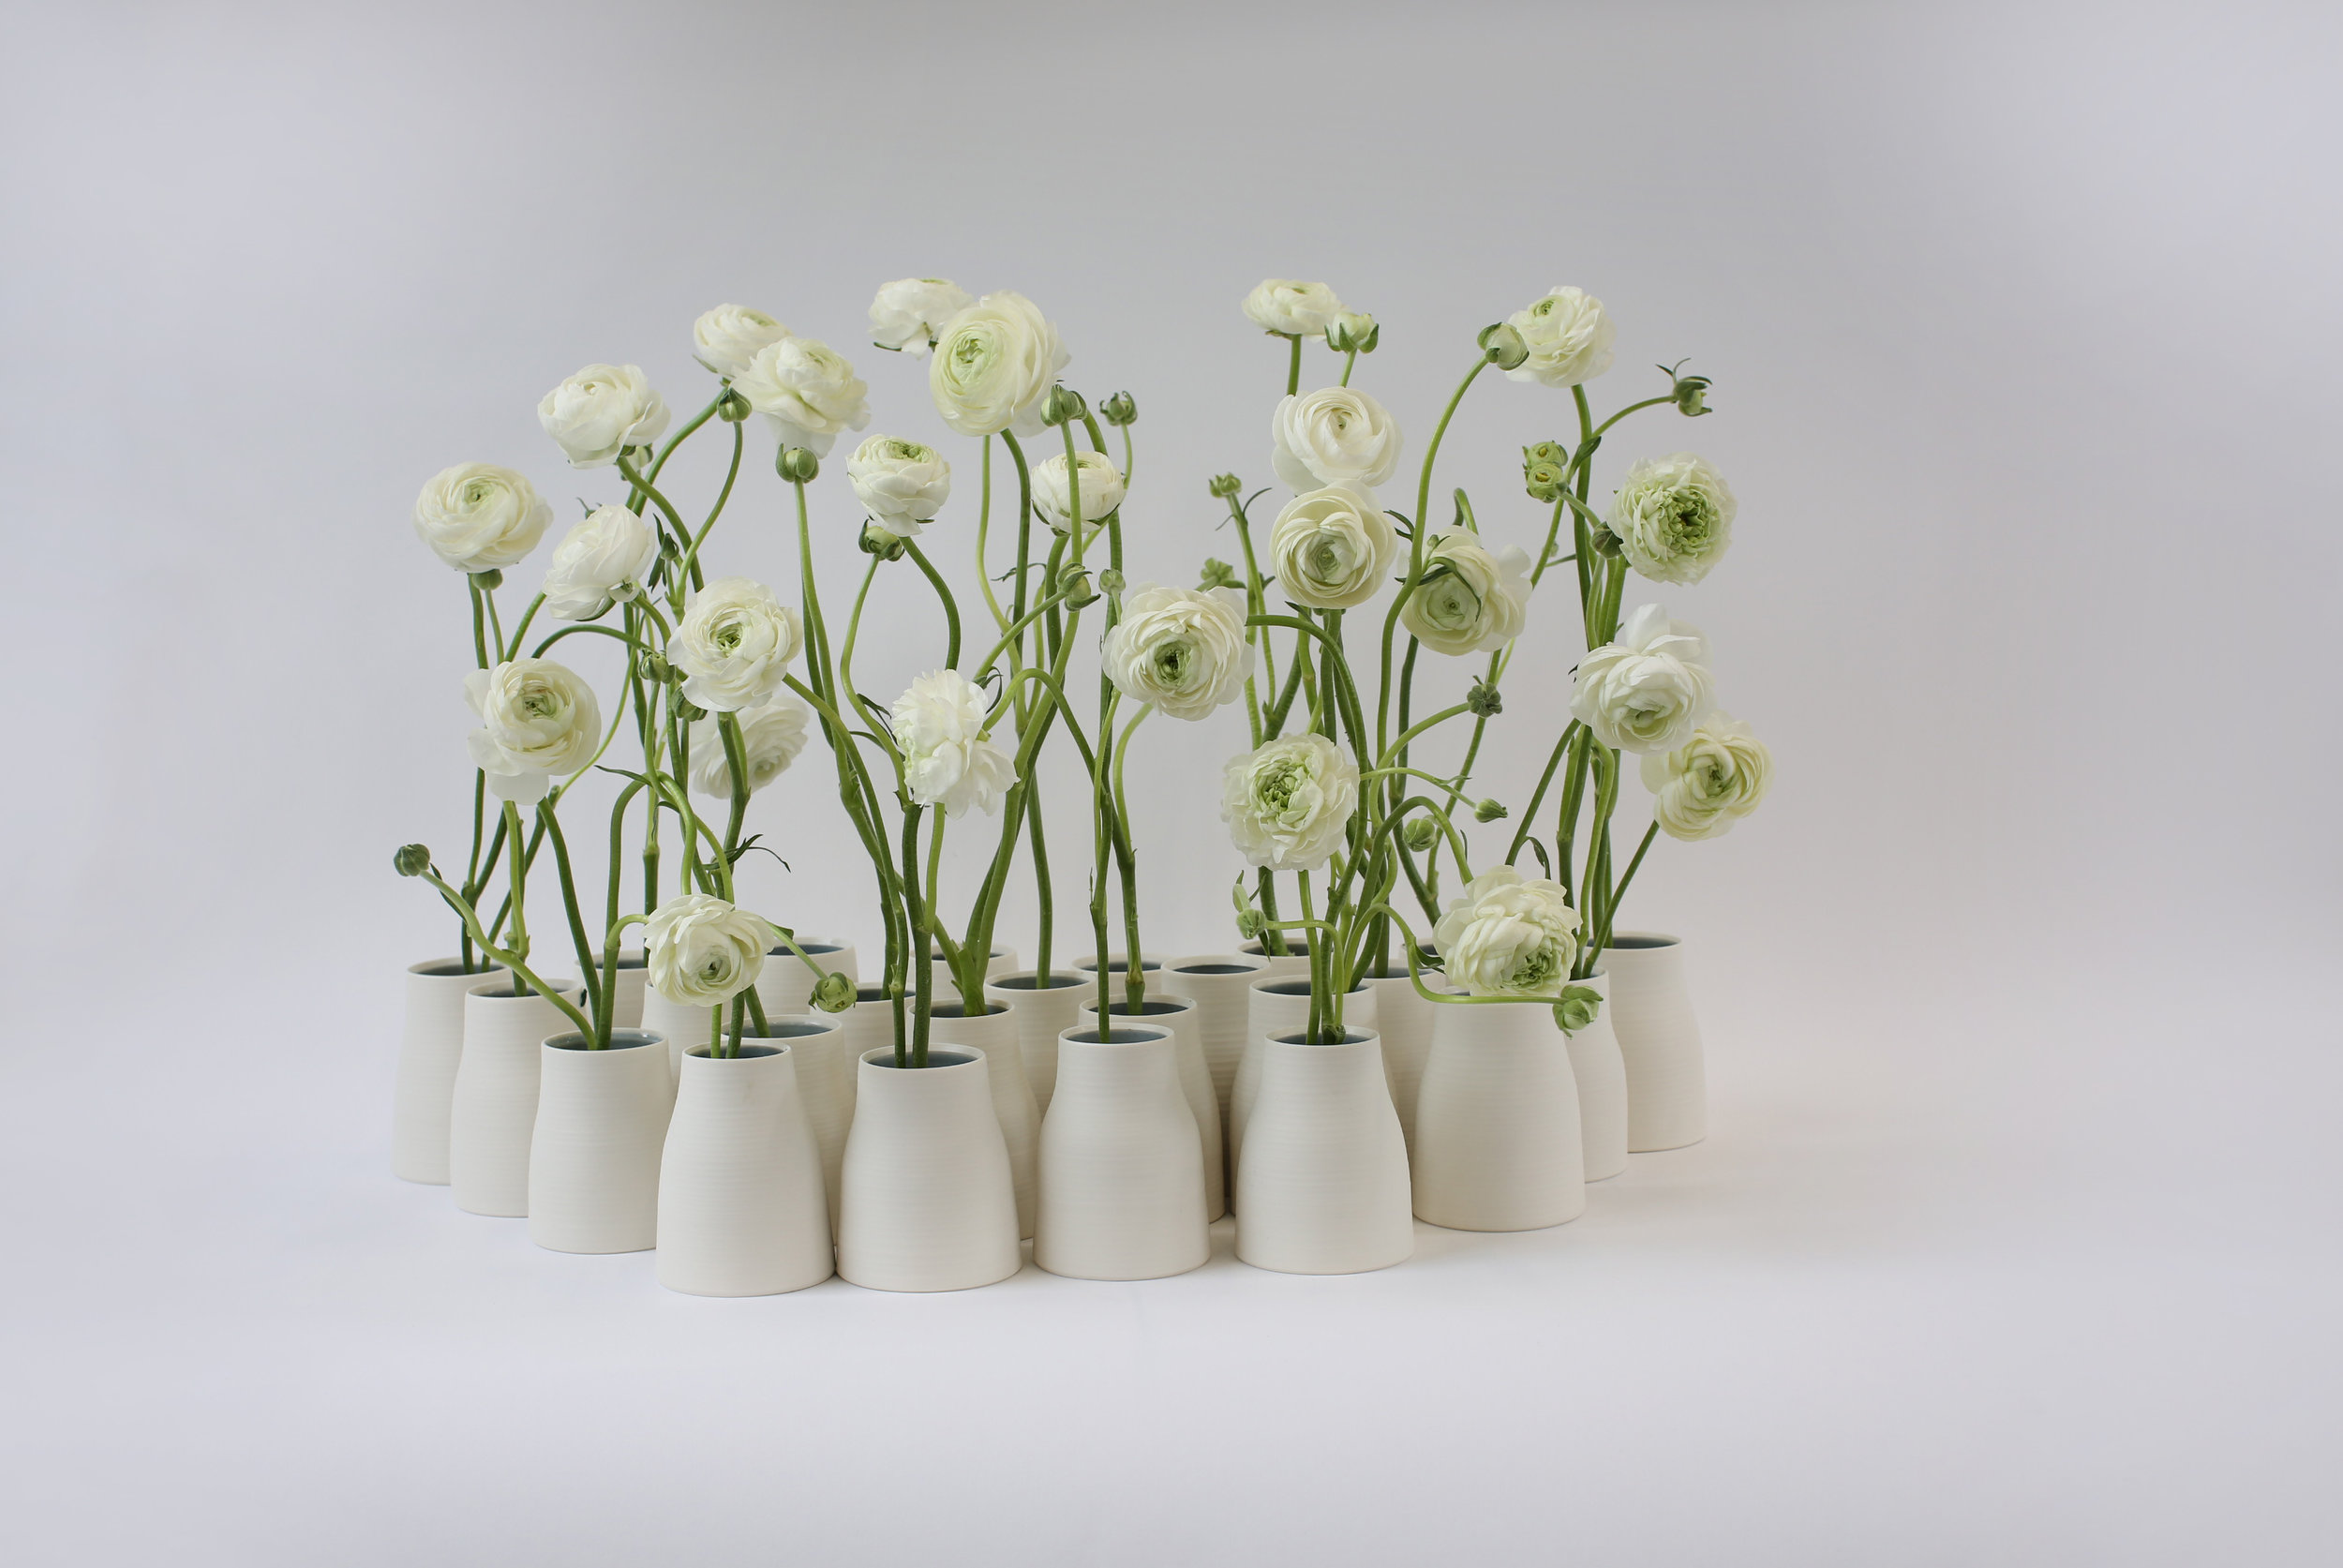 McQueens publicity shot of the Anniversary Vases with ranunculus flowers